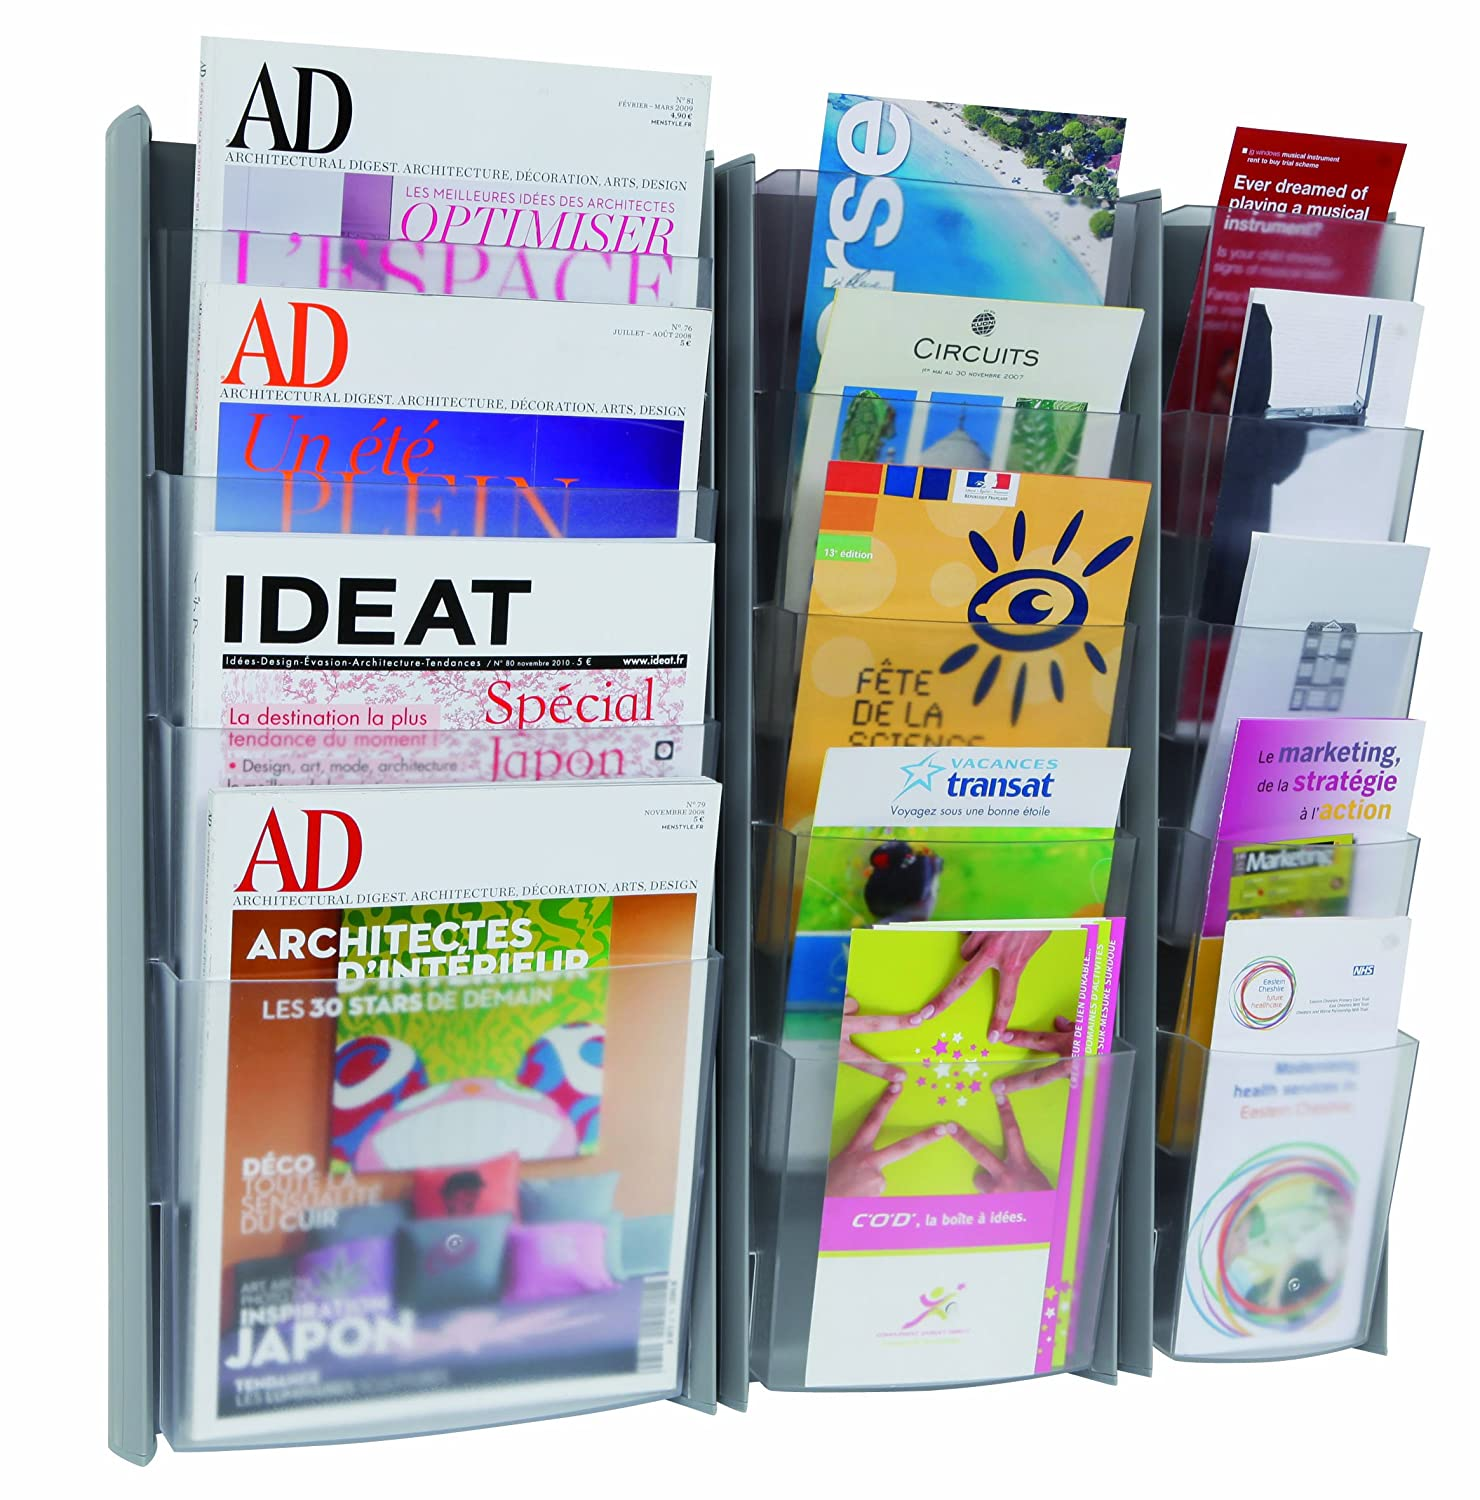 Amazon Alba 5 Pocket Wall Document Display for Leaflets and Brochures 1 3 Letter Size Pockets Black DDPROPMN Literature Organizers fice